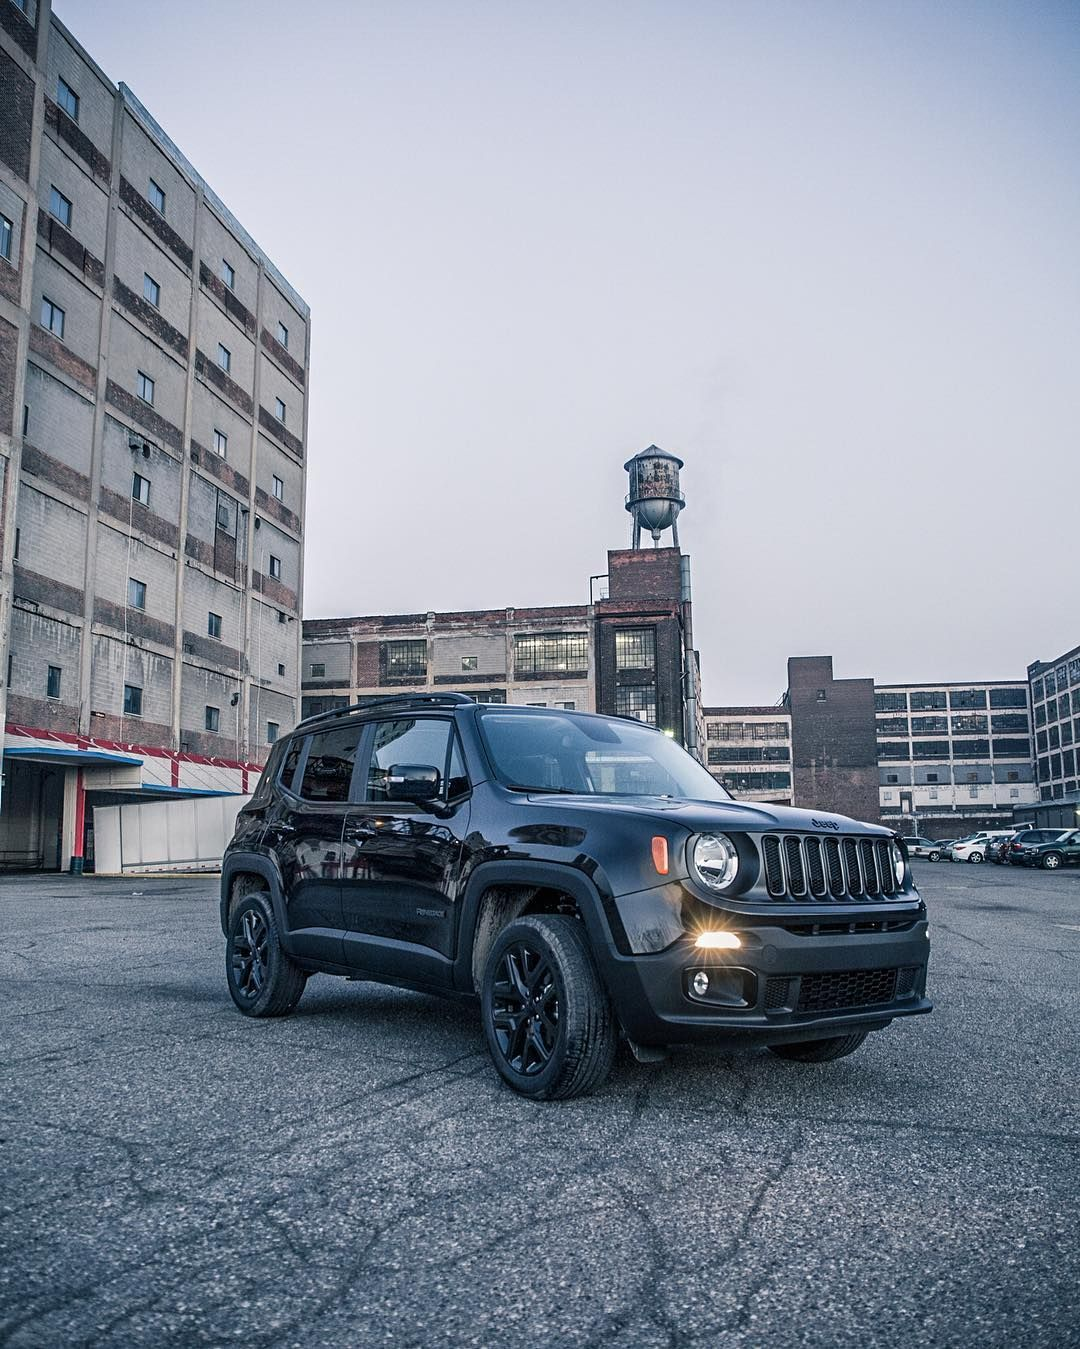 The Jeep Renegade Dawn Of Justice Special Edition Is Here To Fight Boring Commutes Batmanvsuperman Daw Jeep Renegade Jeep Renegade Black Jeep Life